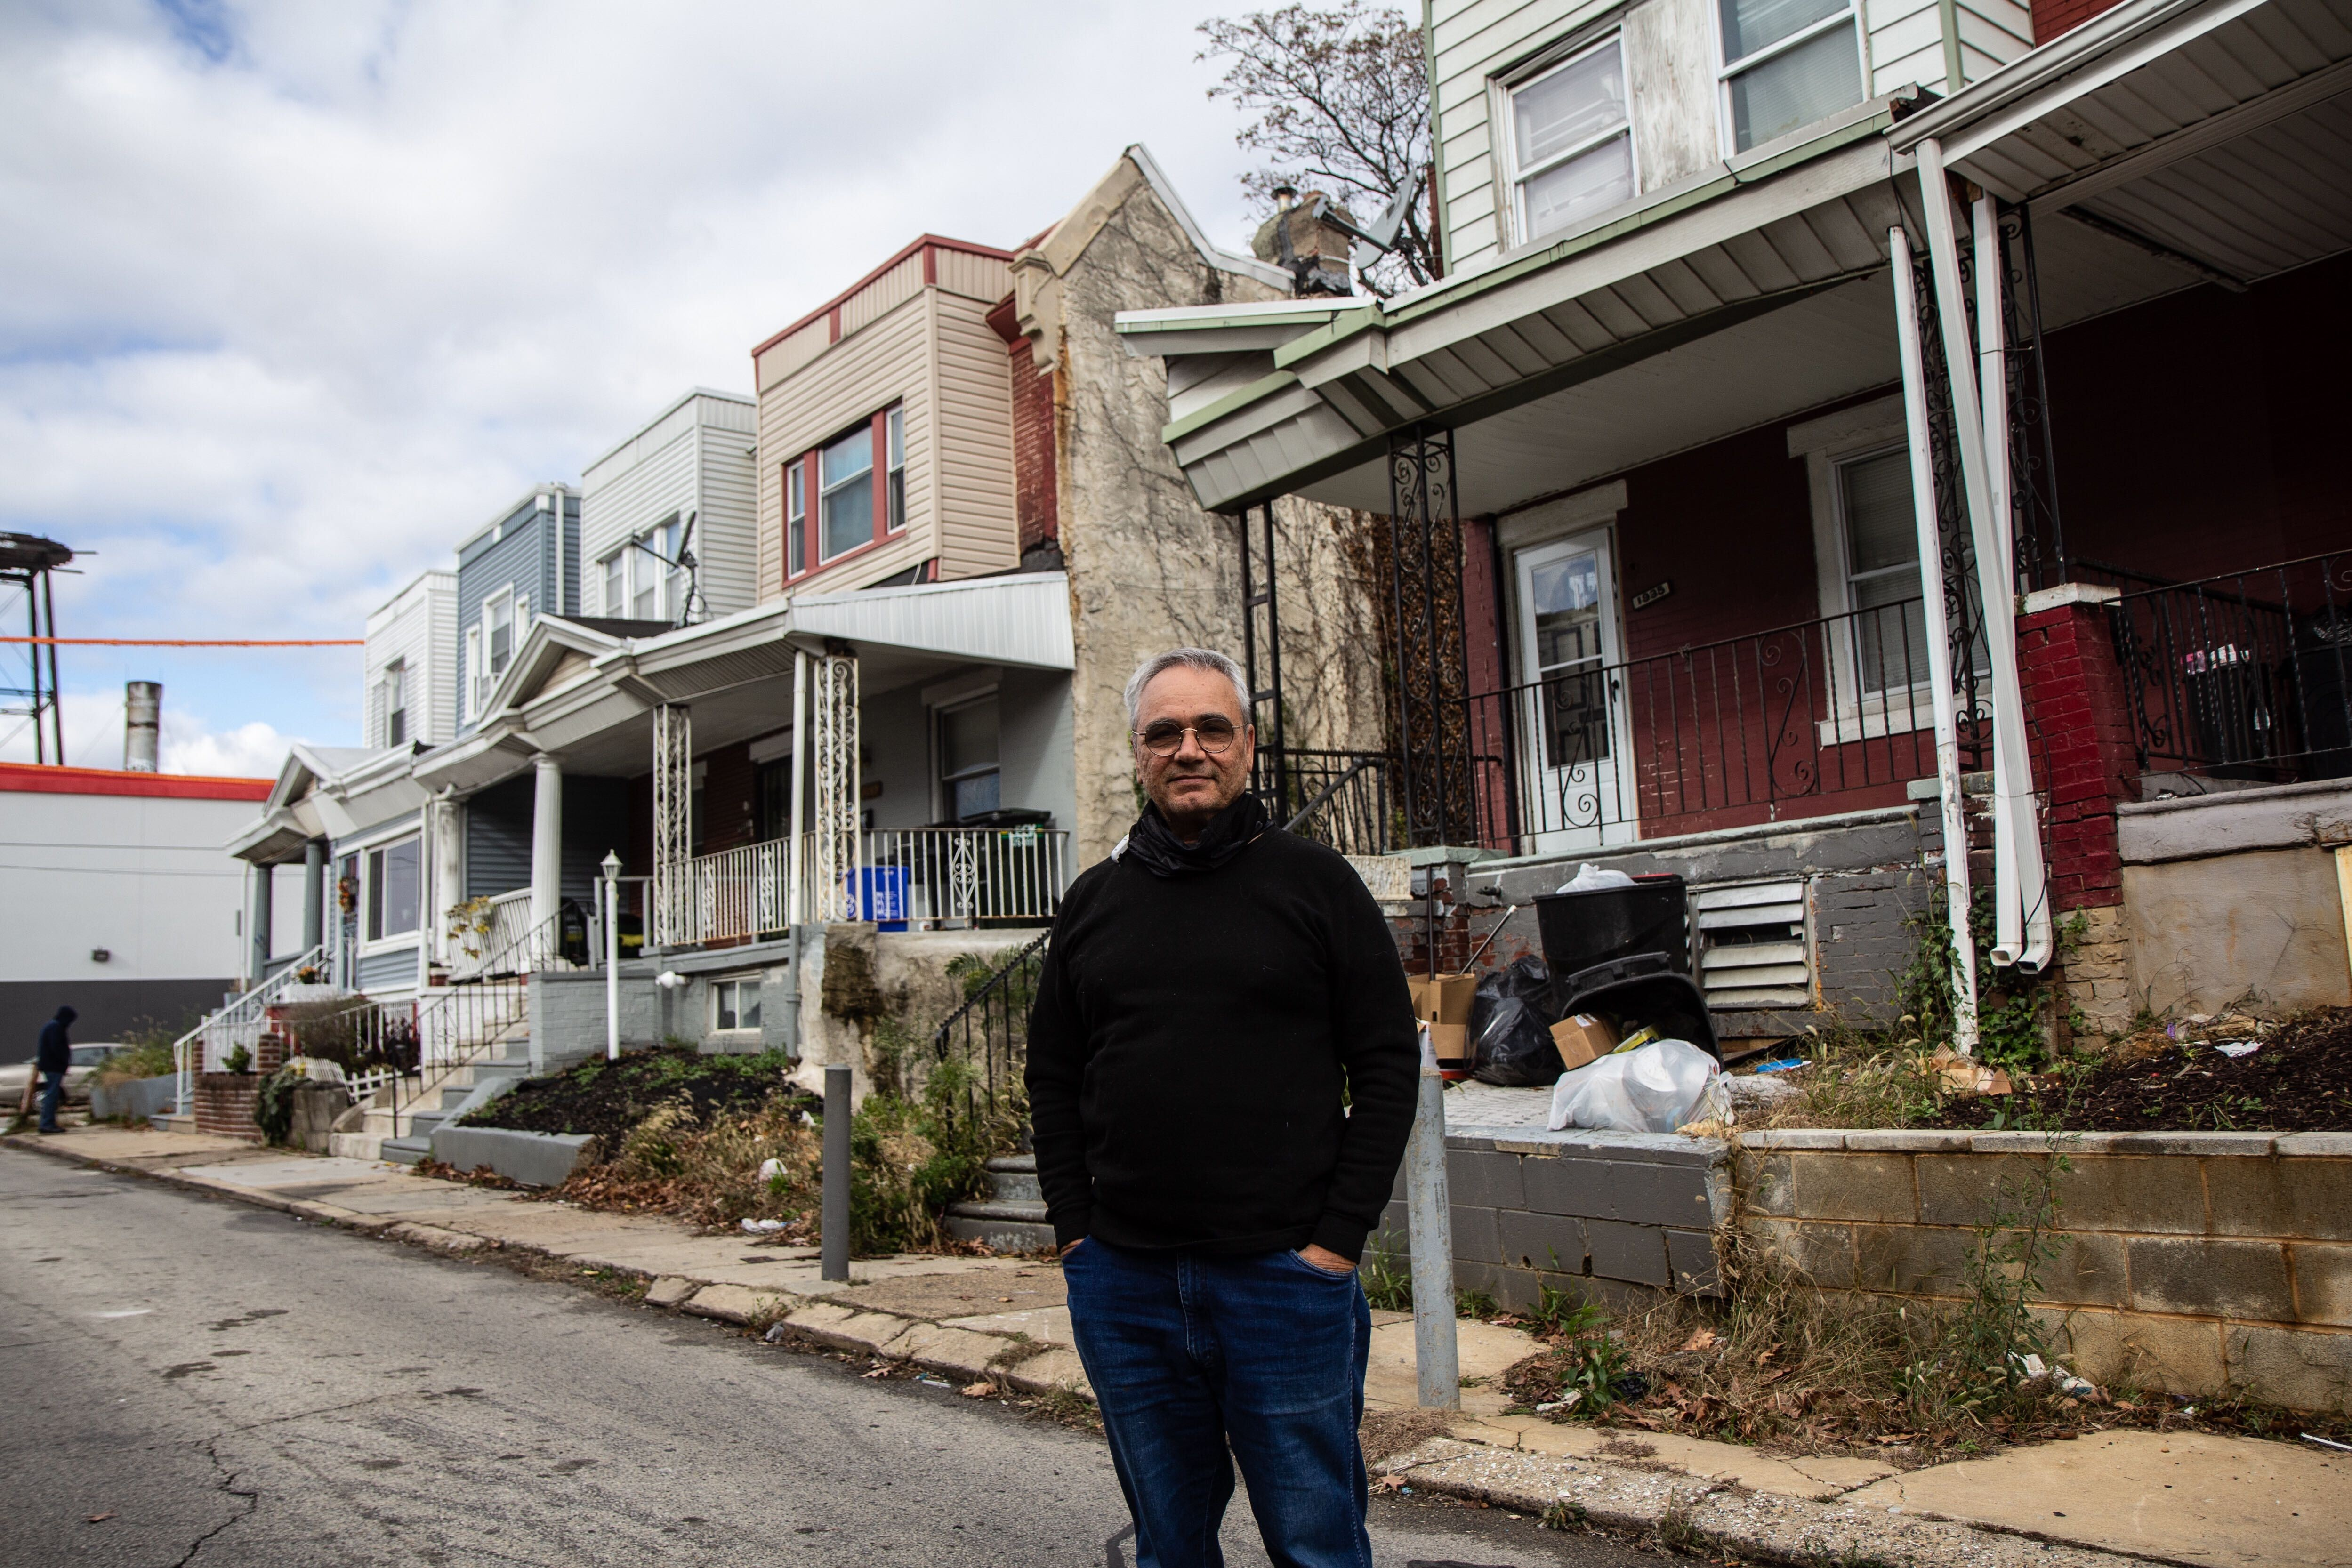 Moshe Attas in front of his property on Airdrie Street in Philadelphia